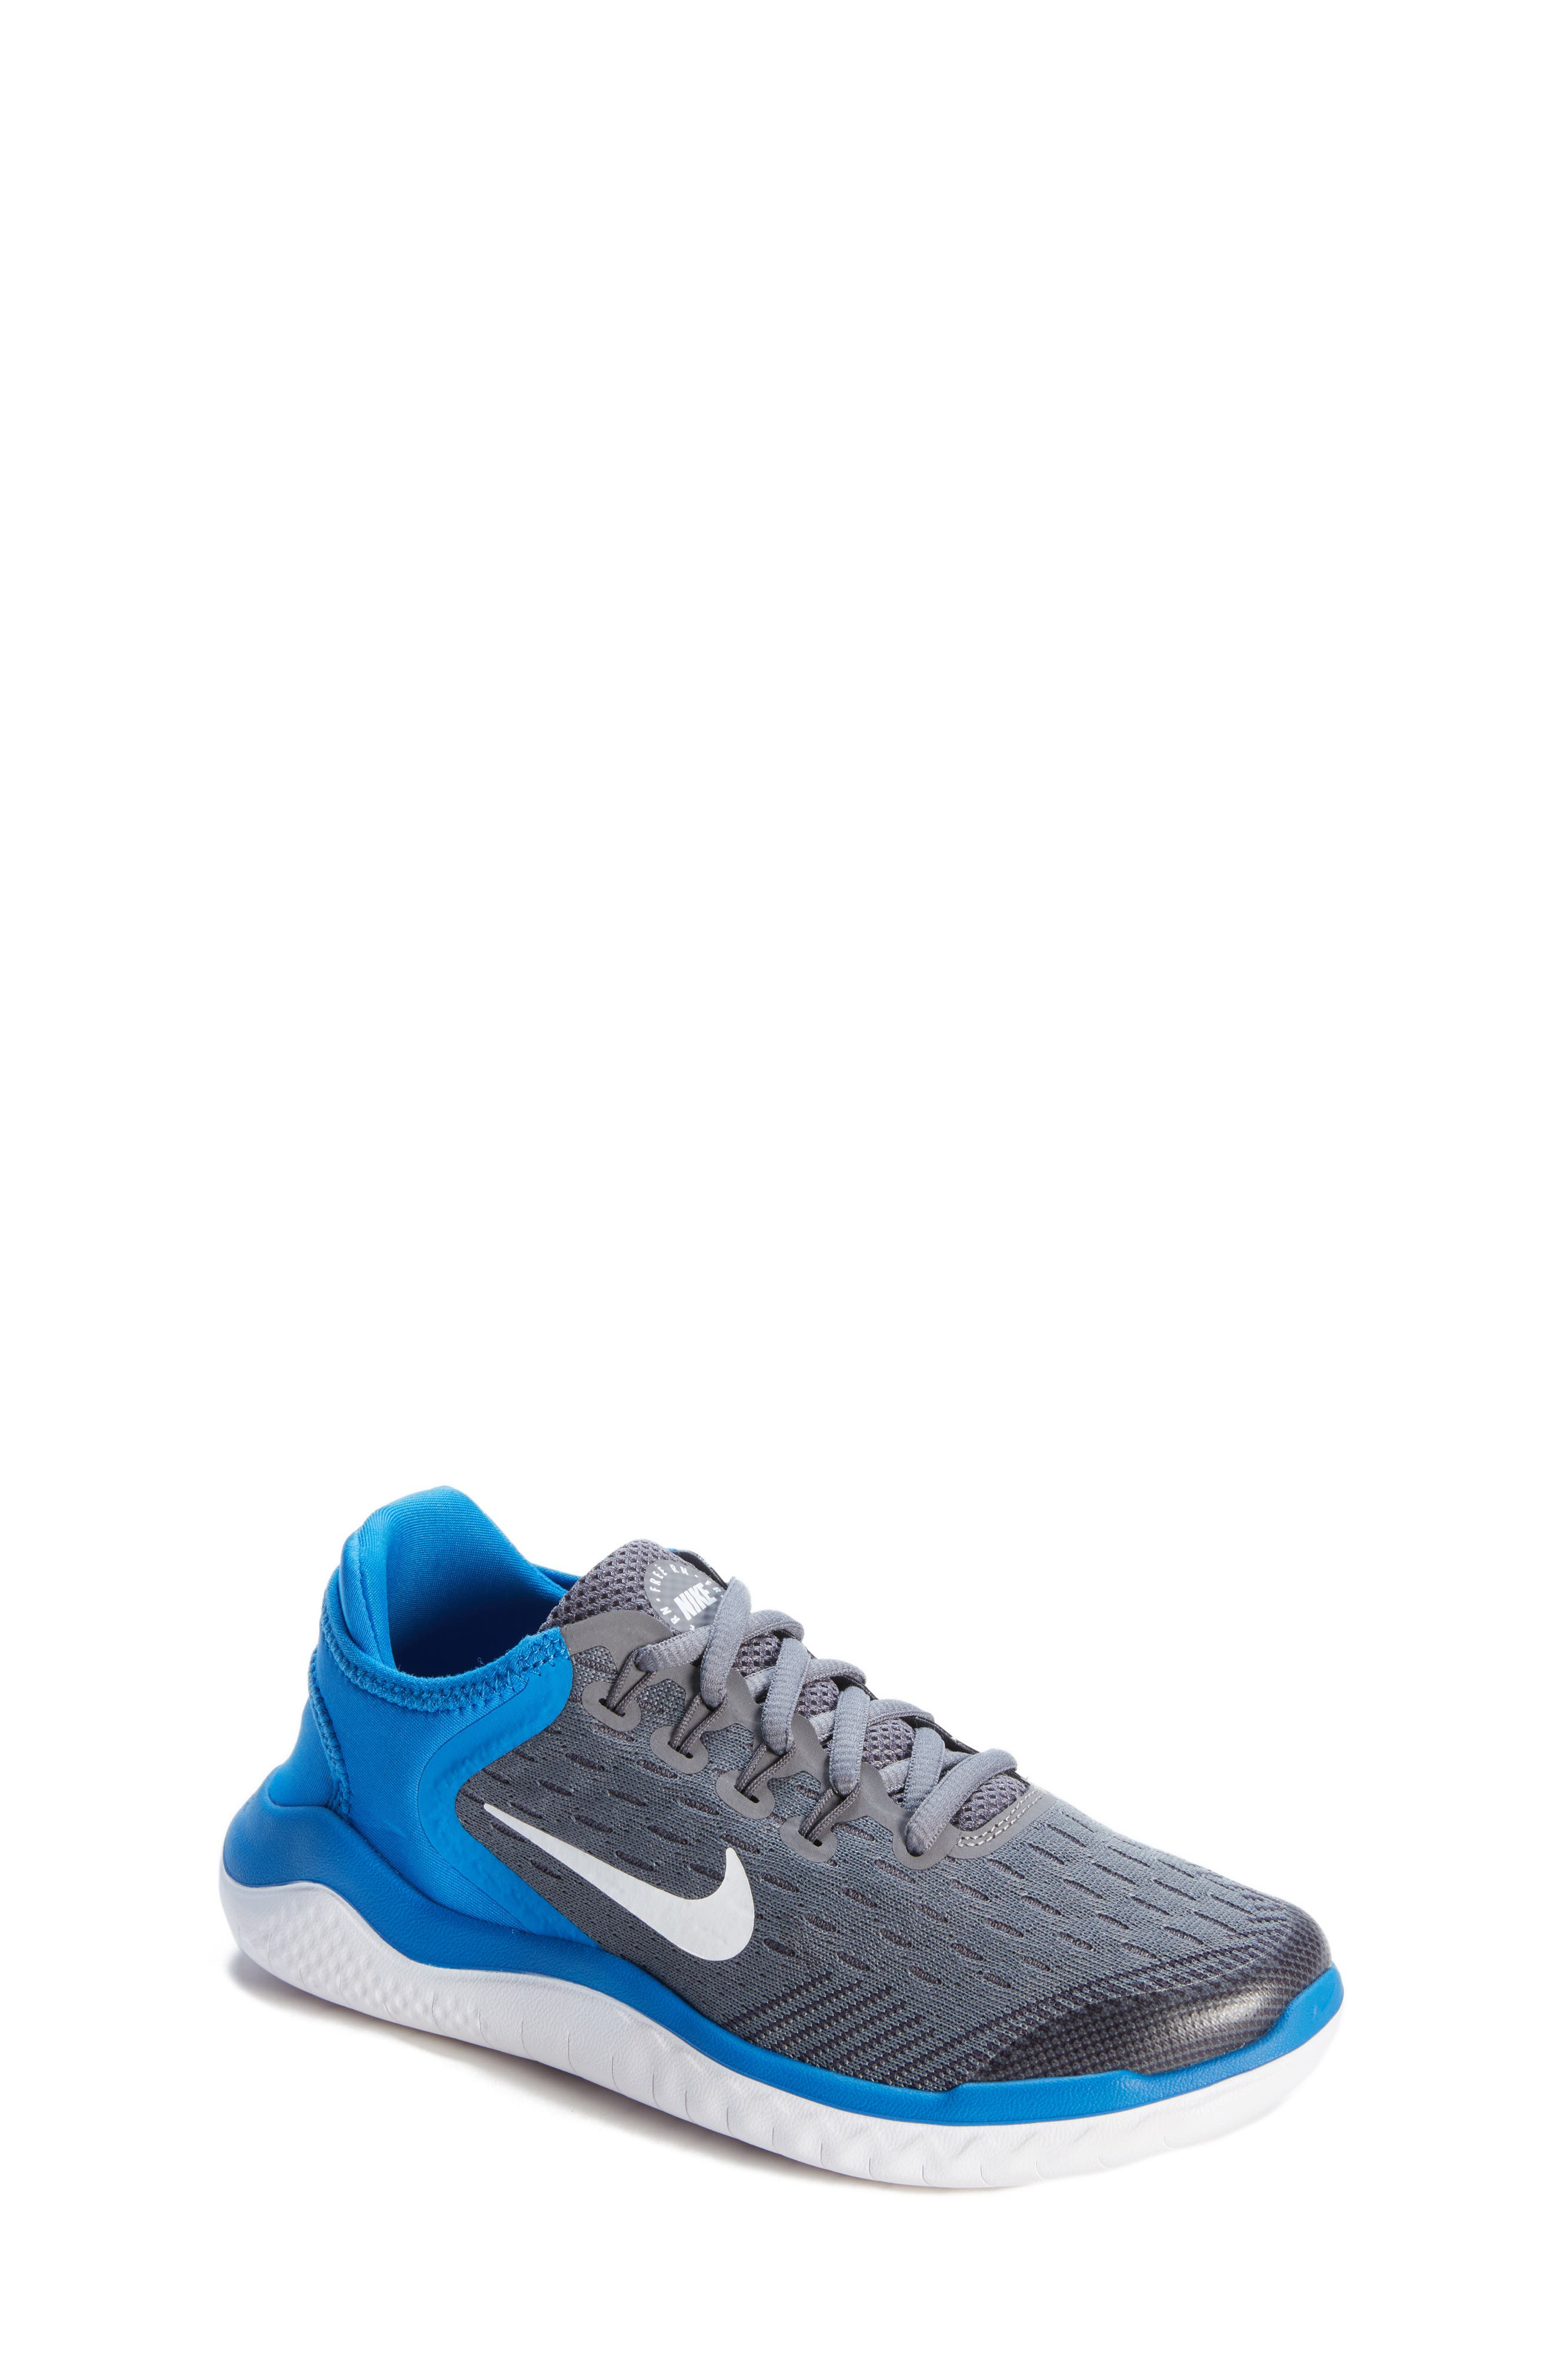 Free RN 2018 Running Shoe,                         Main,                         color, GREY/WHITE/BLUE